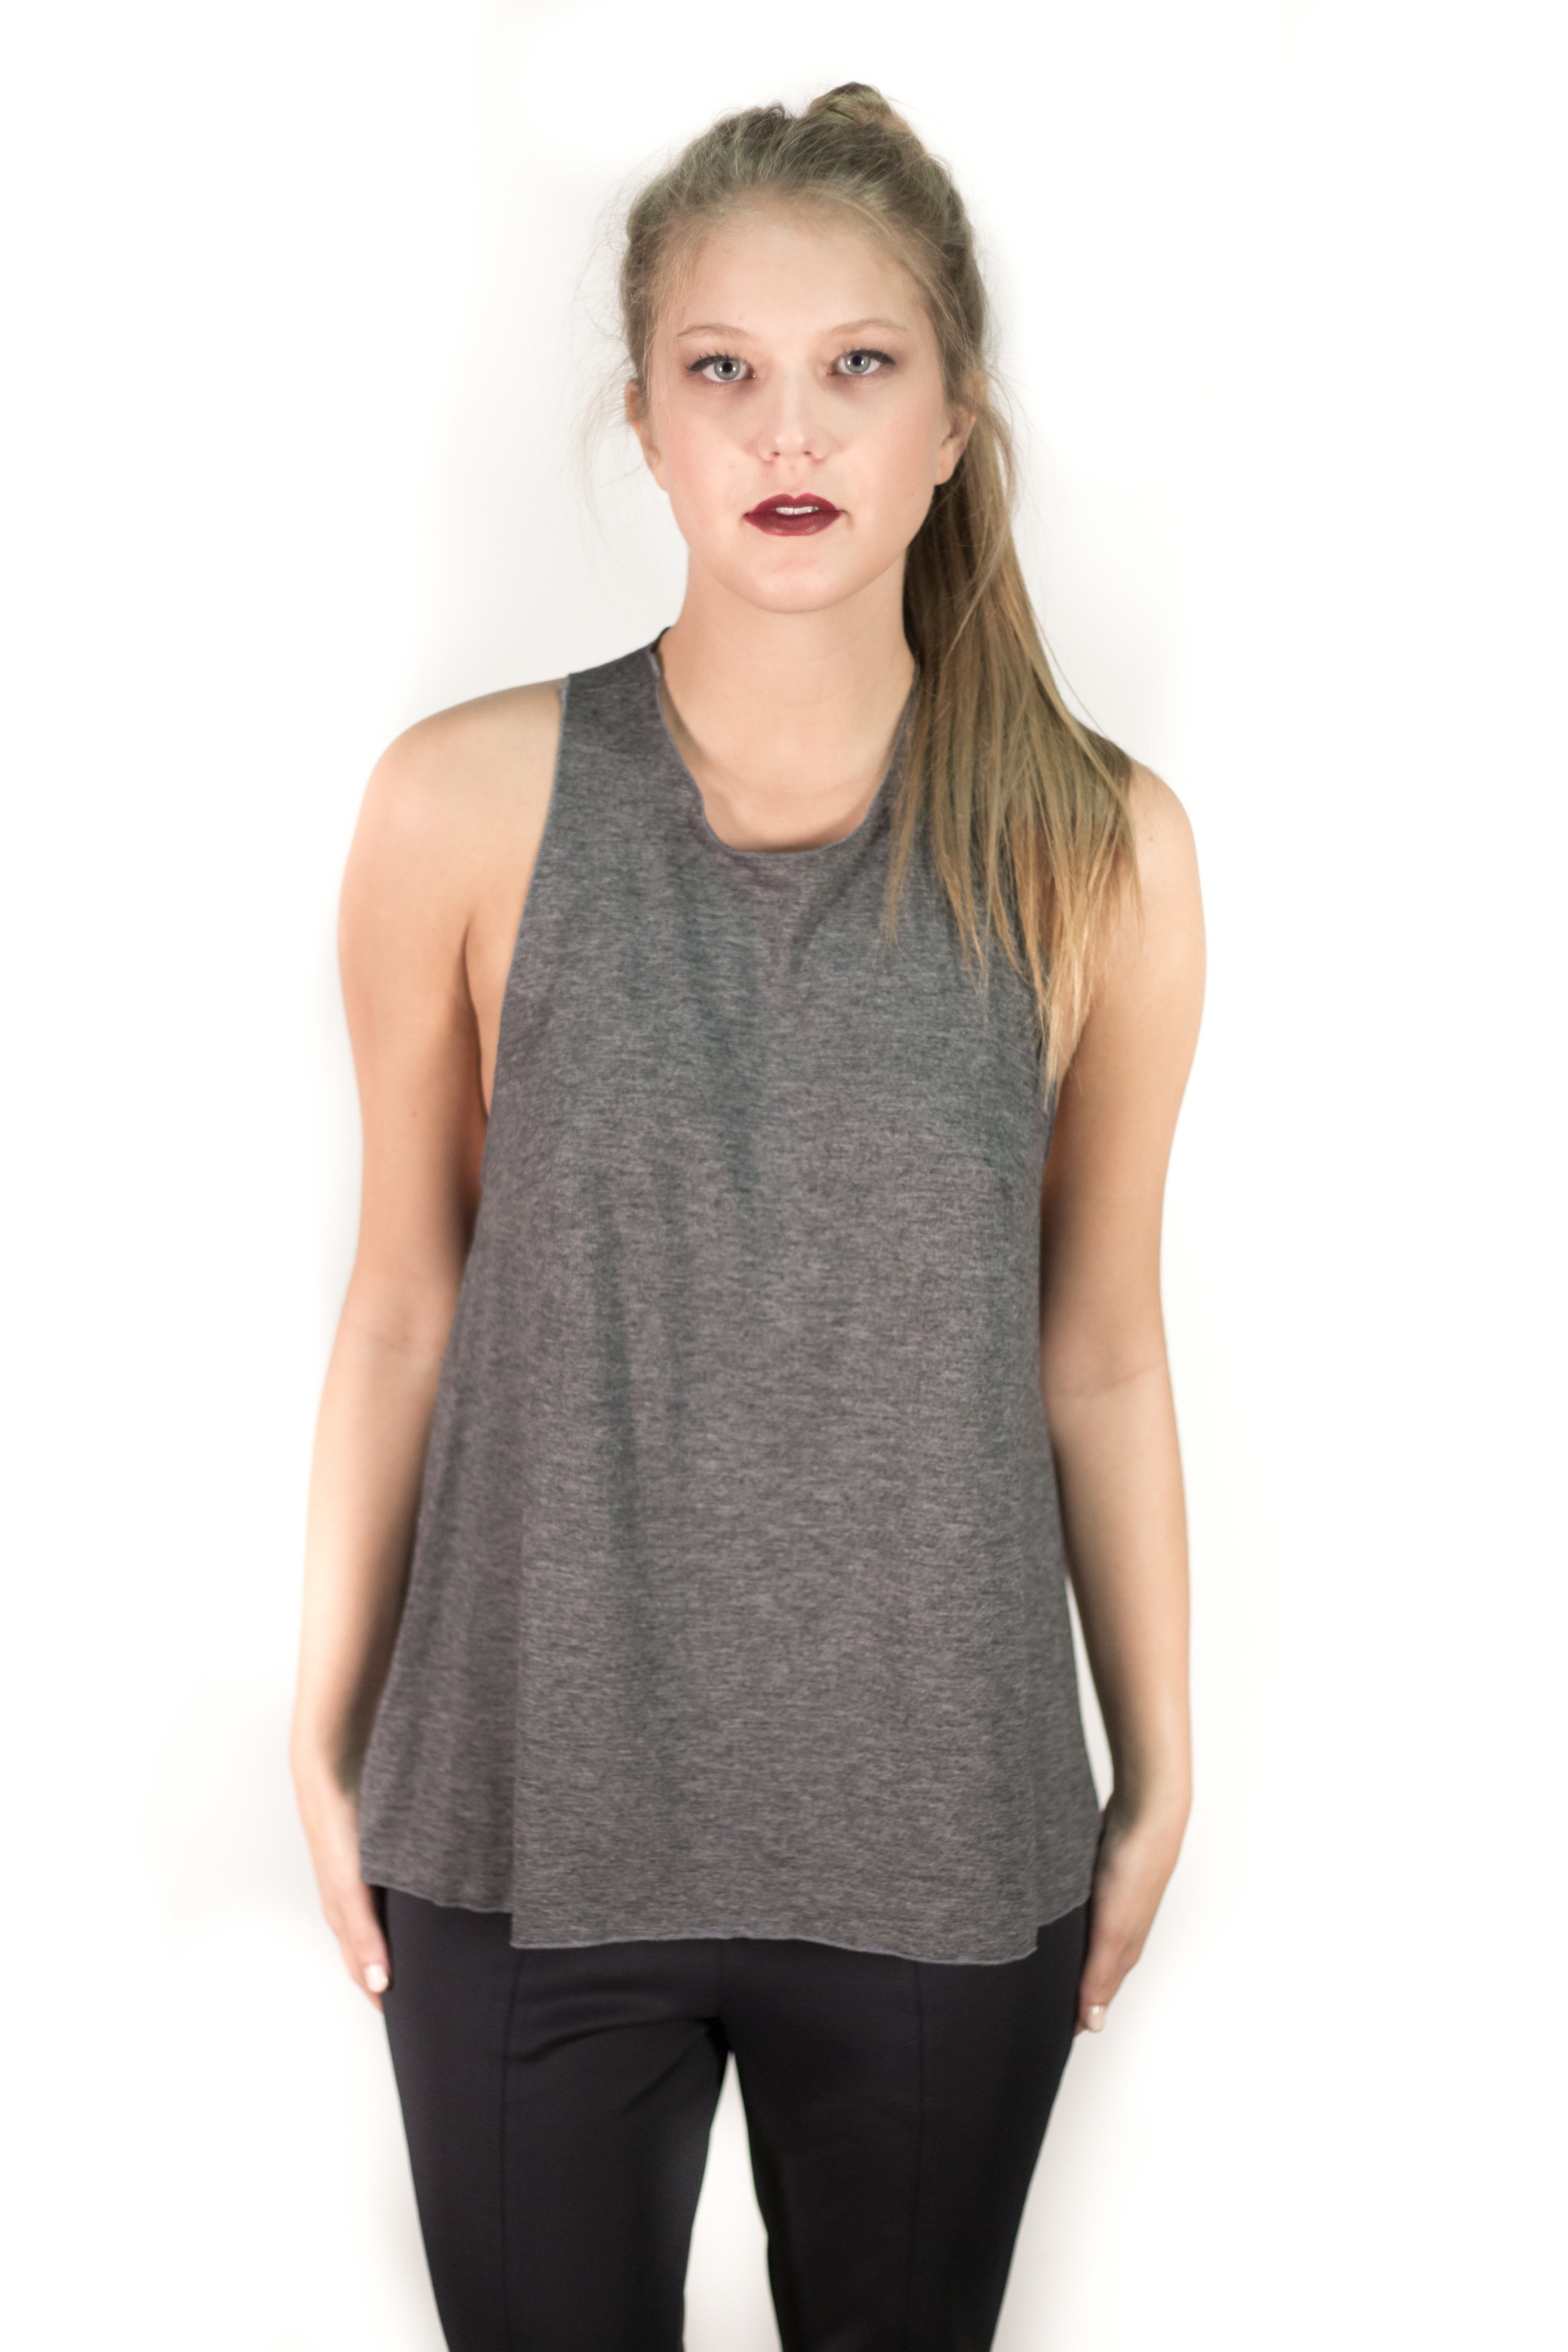 Luxe Tank Kaitlyn Mae shop.kaitlynmaedesign.com